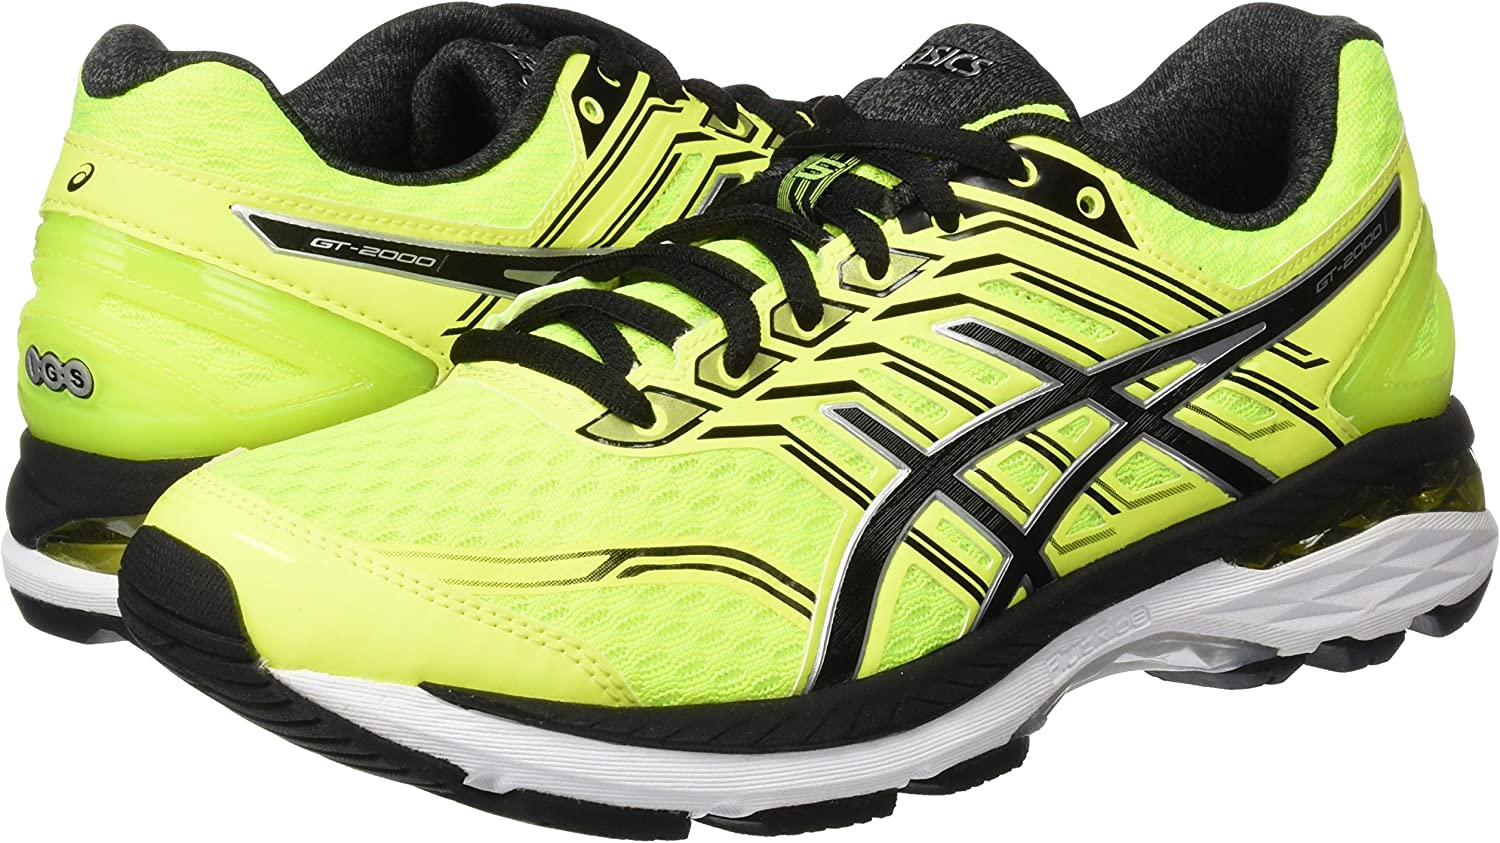 ASICS T707N0790, Zapatillas de Running para Hombre, Amarillo (Safety Yellow / Black / Silver), 39.5 EU: Amazon.es: Zapatos y complementos